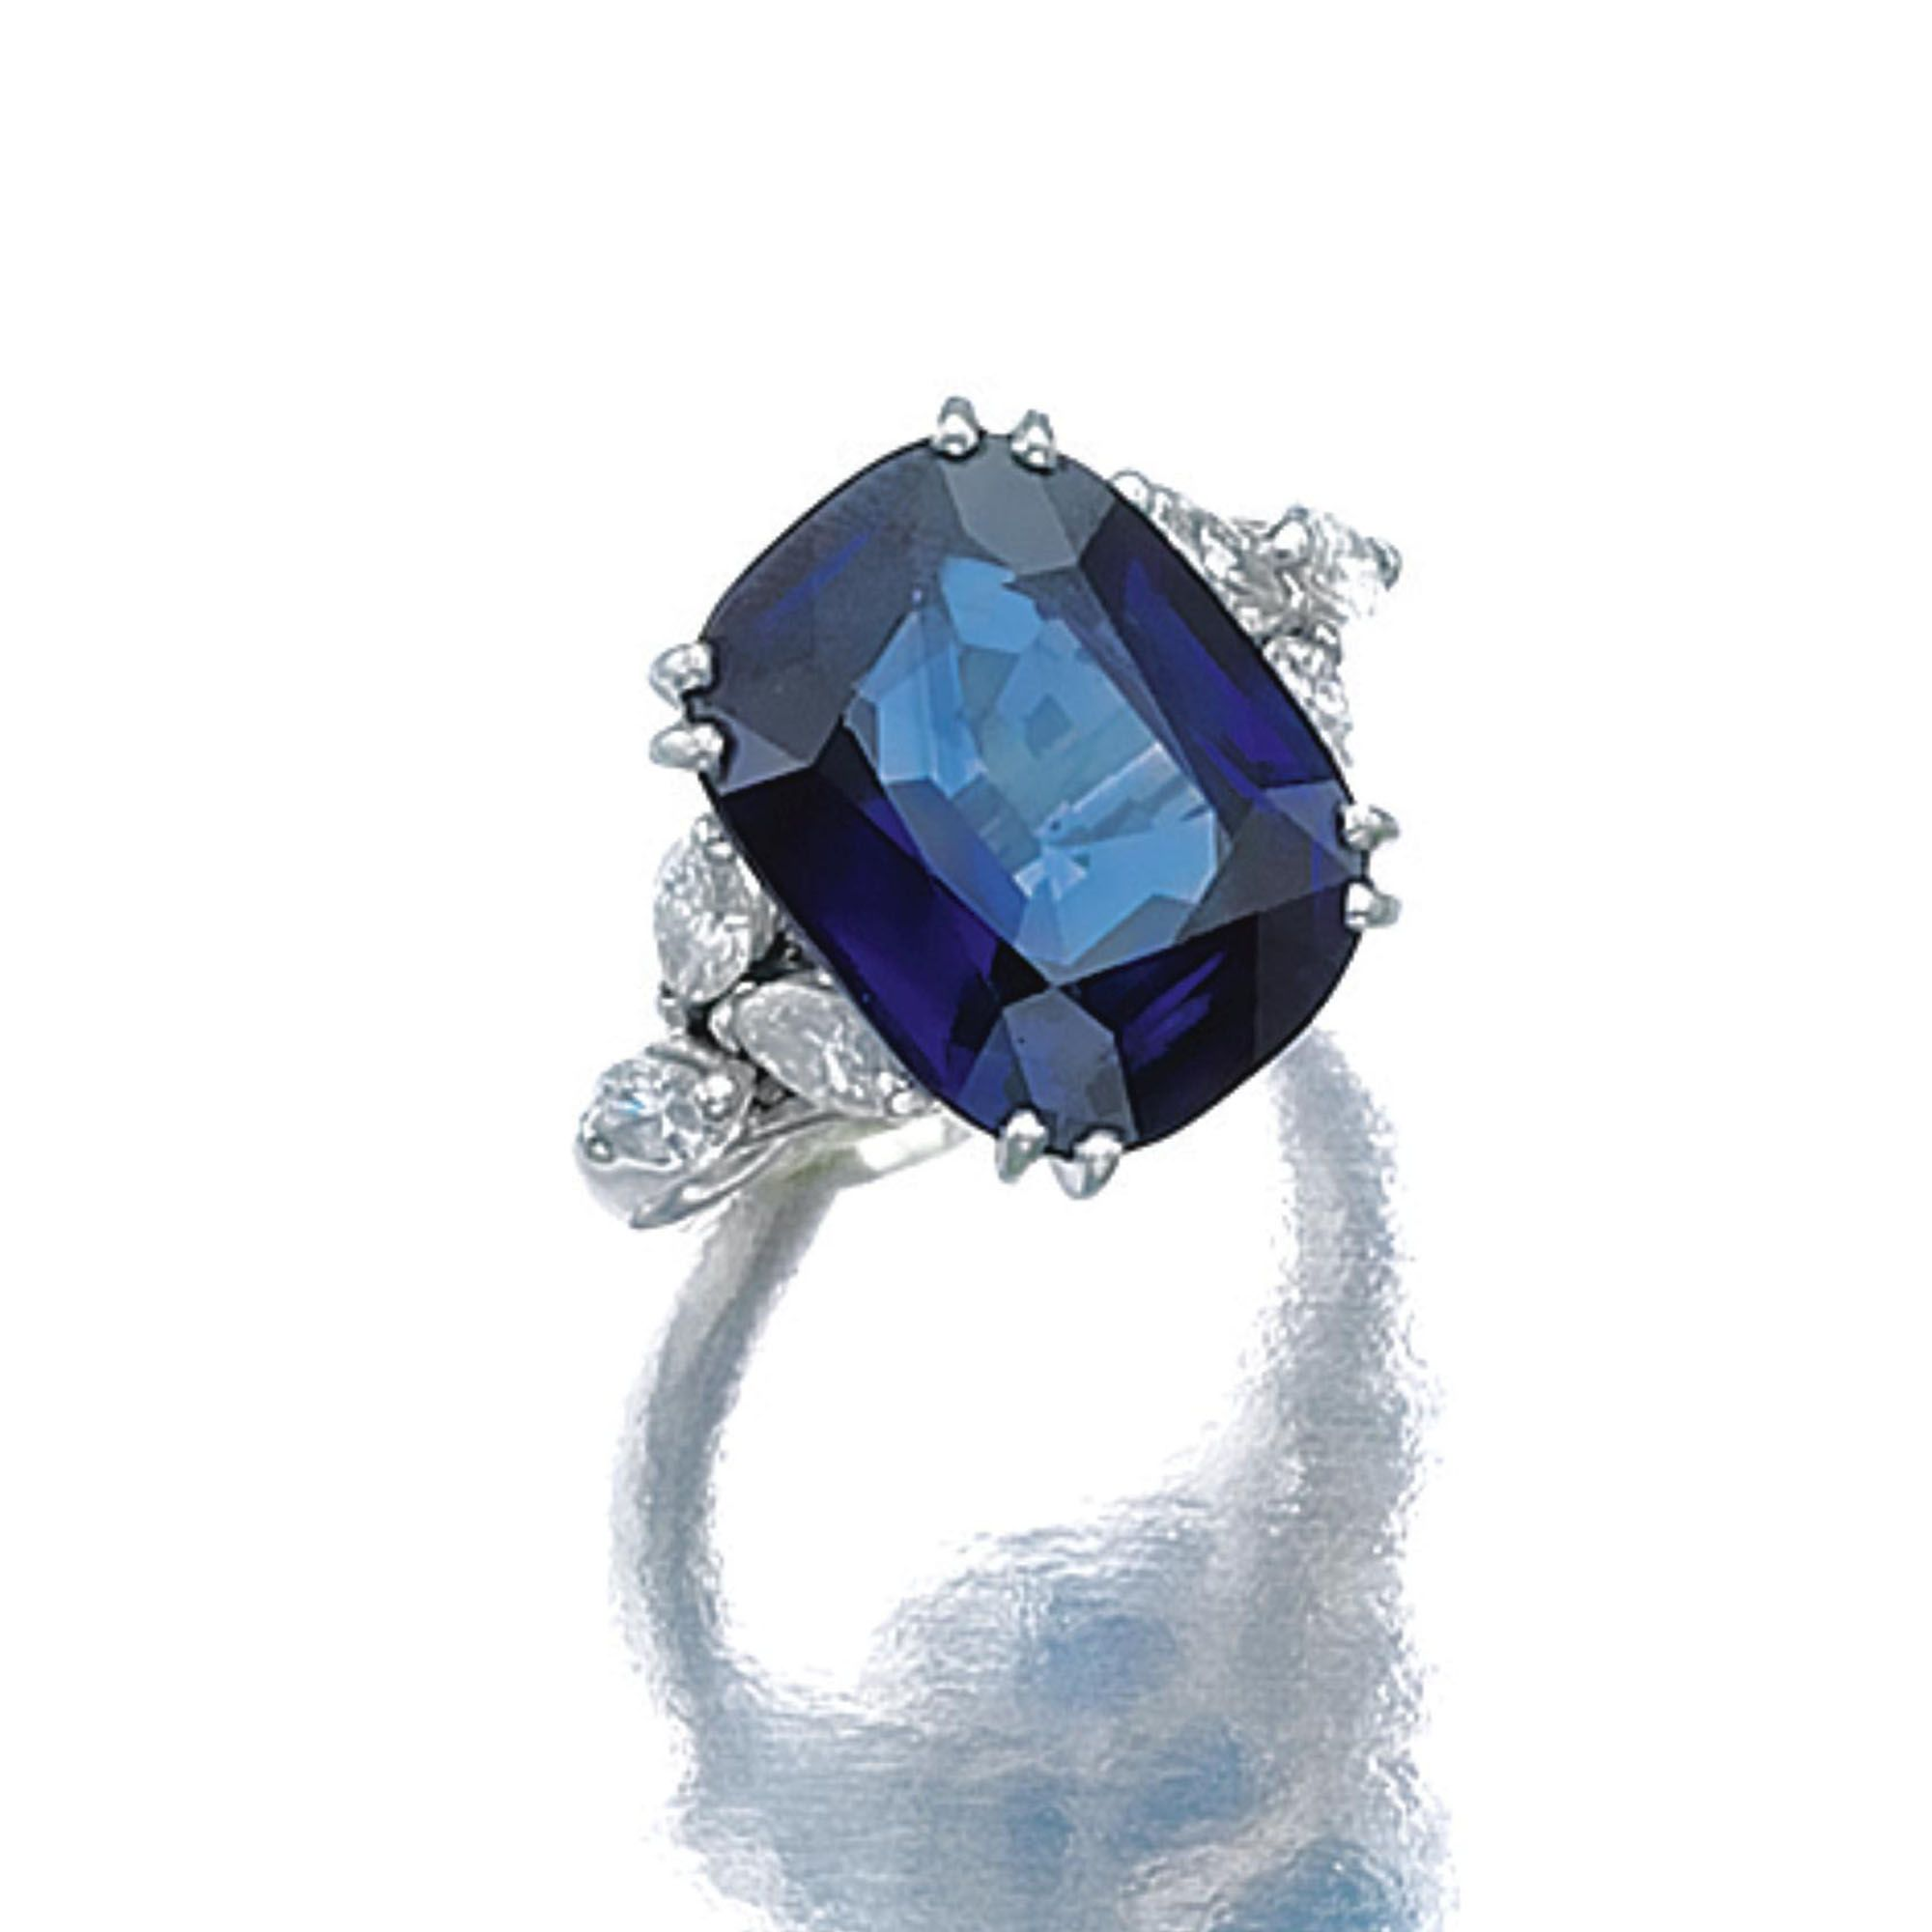 Sapphire and diamond ring | lot | Sotheby's